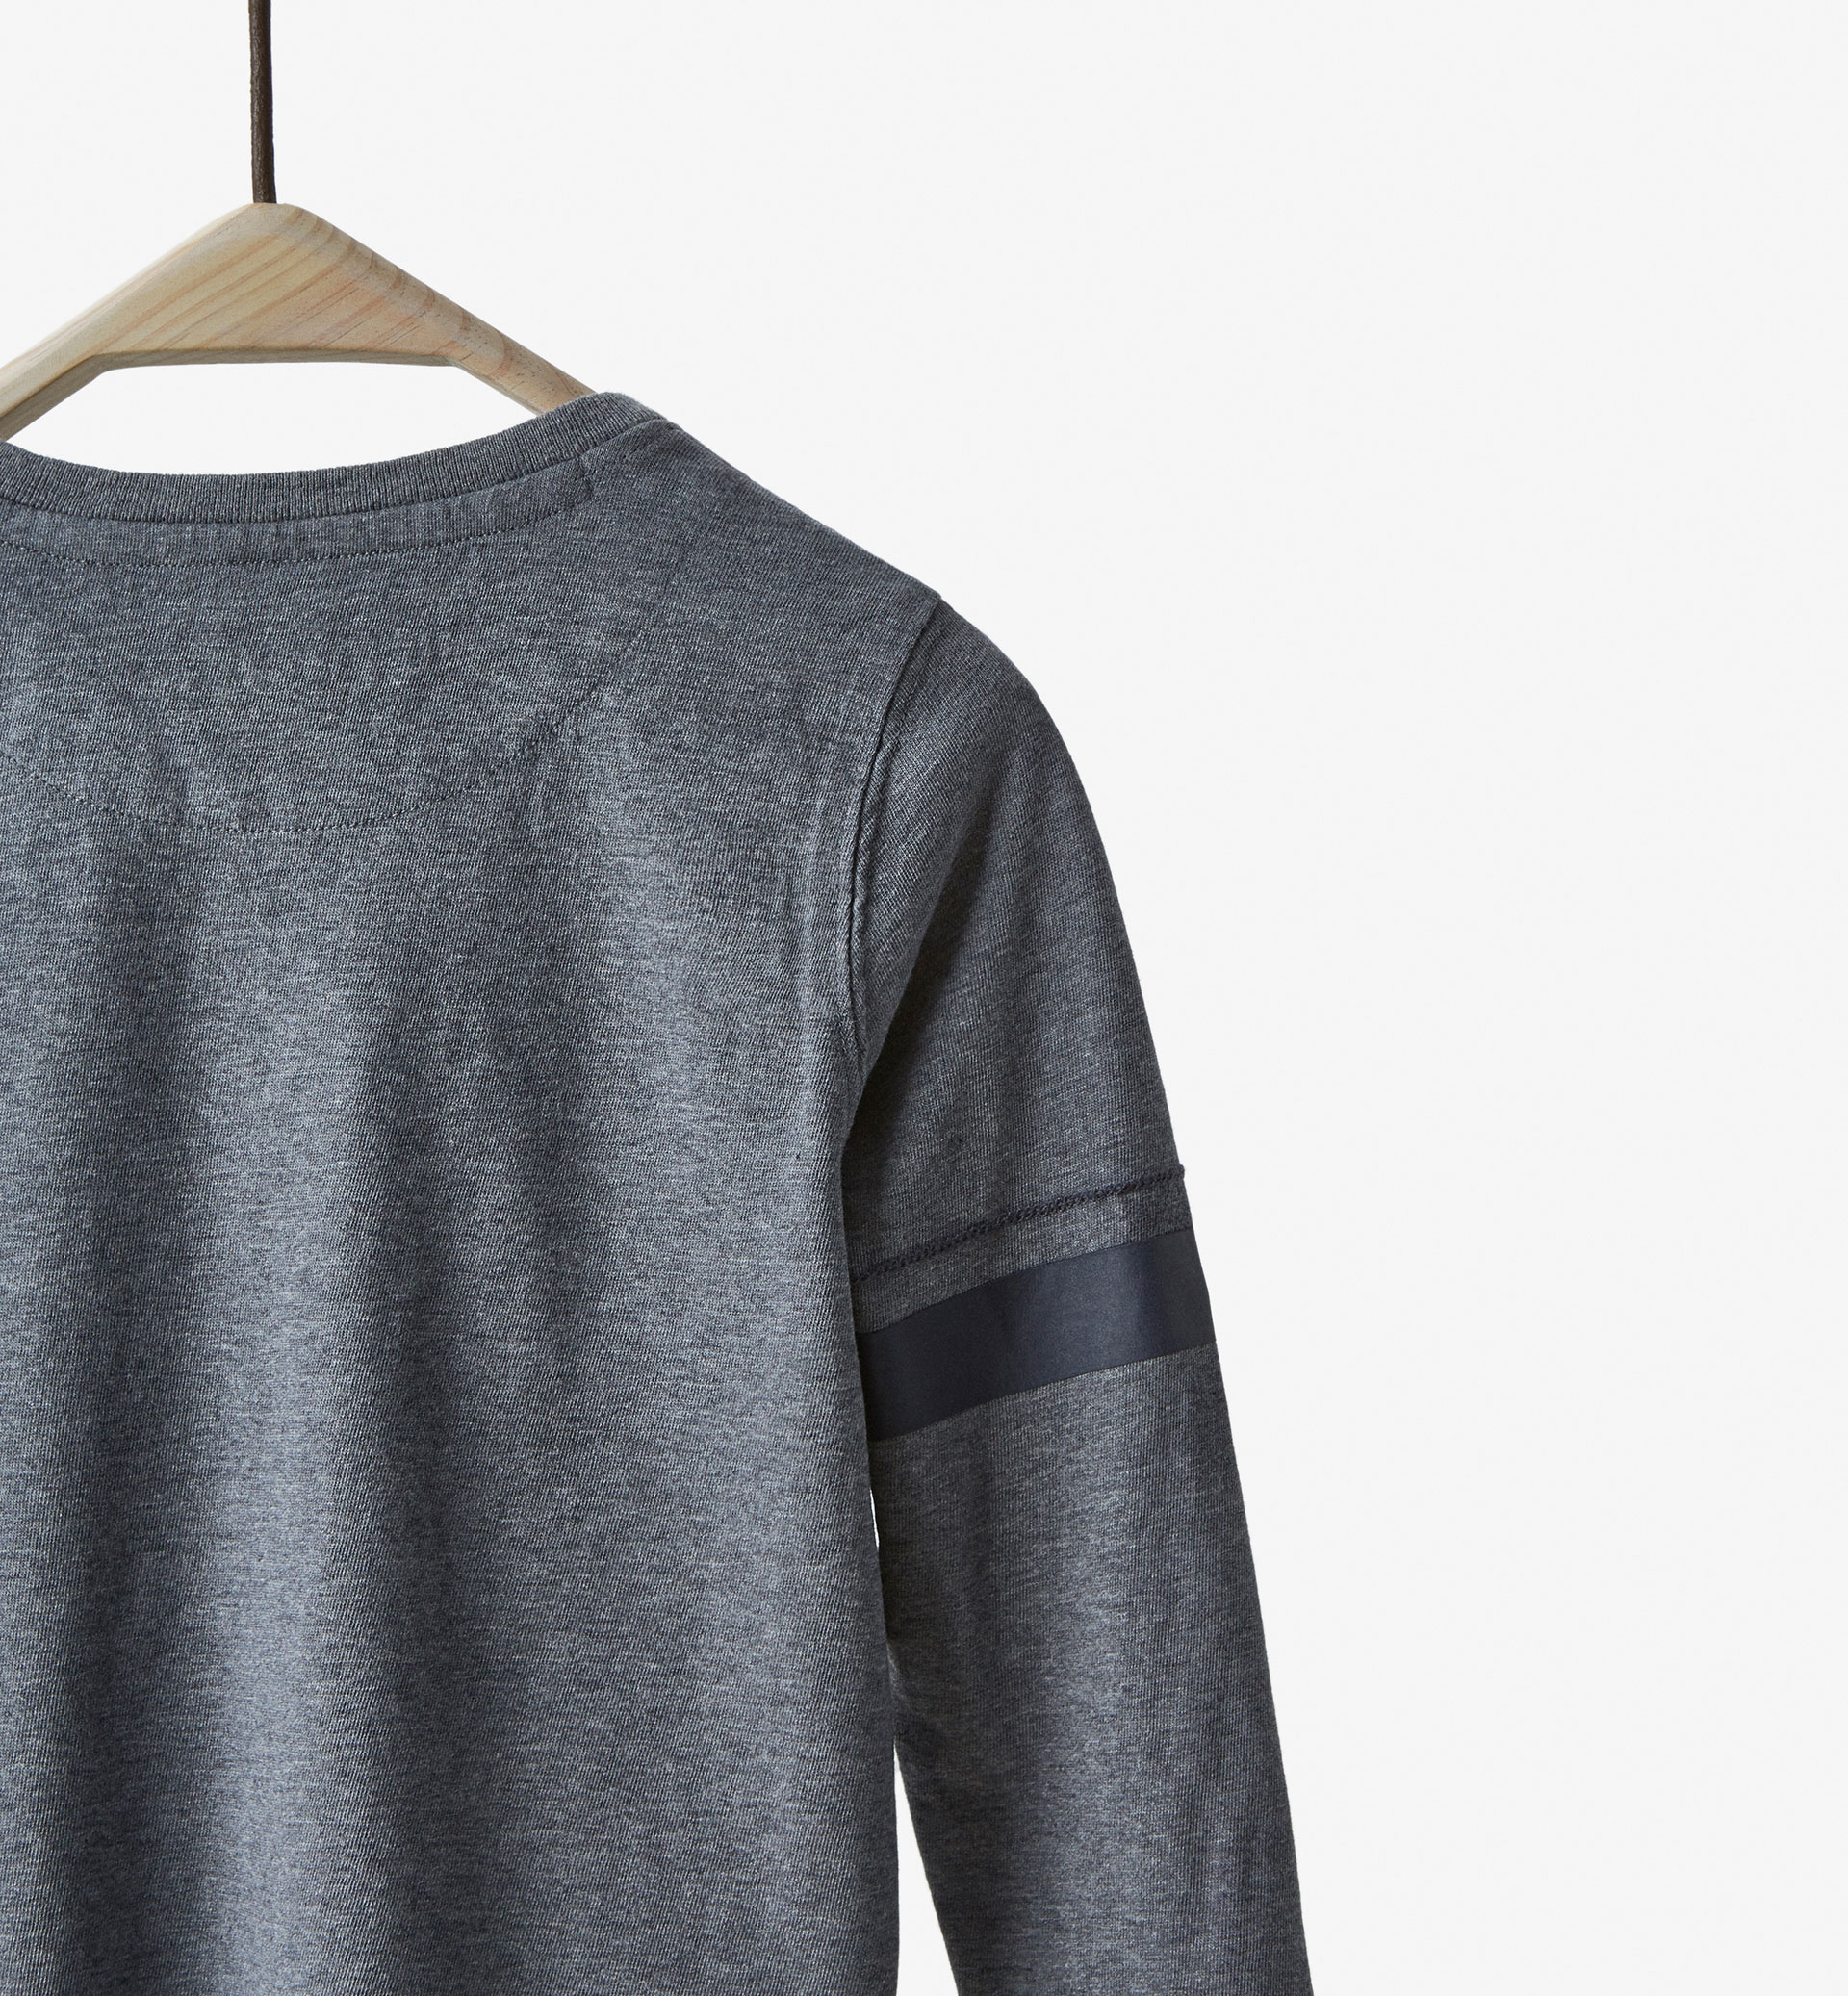 BASIC T-SHIRT WITH 85 DETAIL